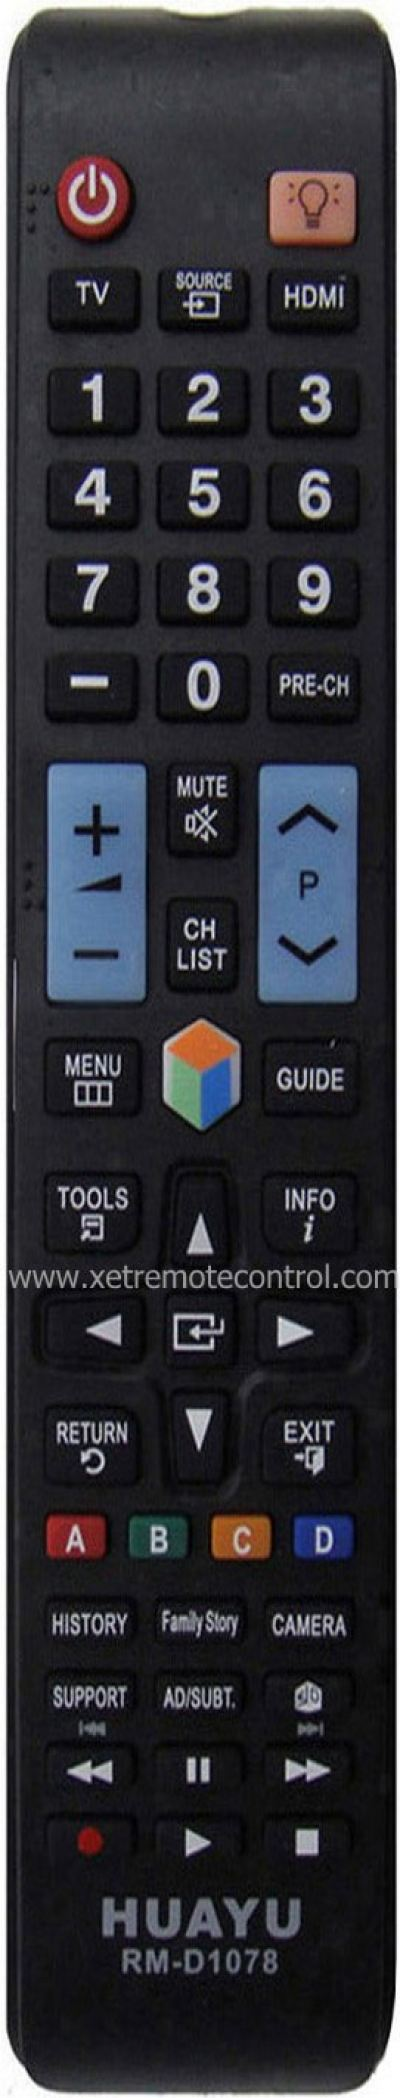 RM-D1078 SAMSUNG LCD/LED TV REMOTE CONTROL